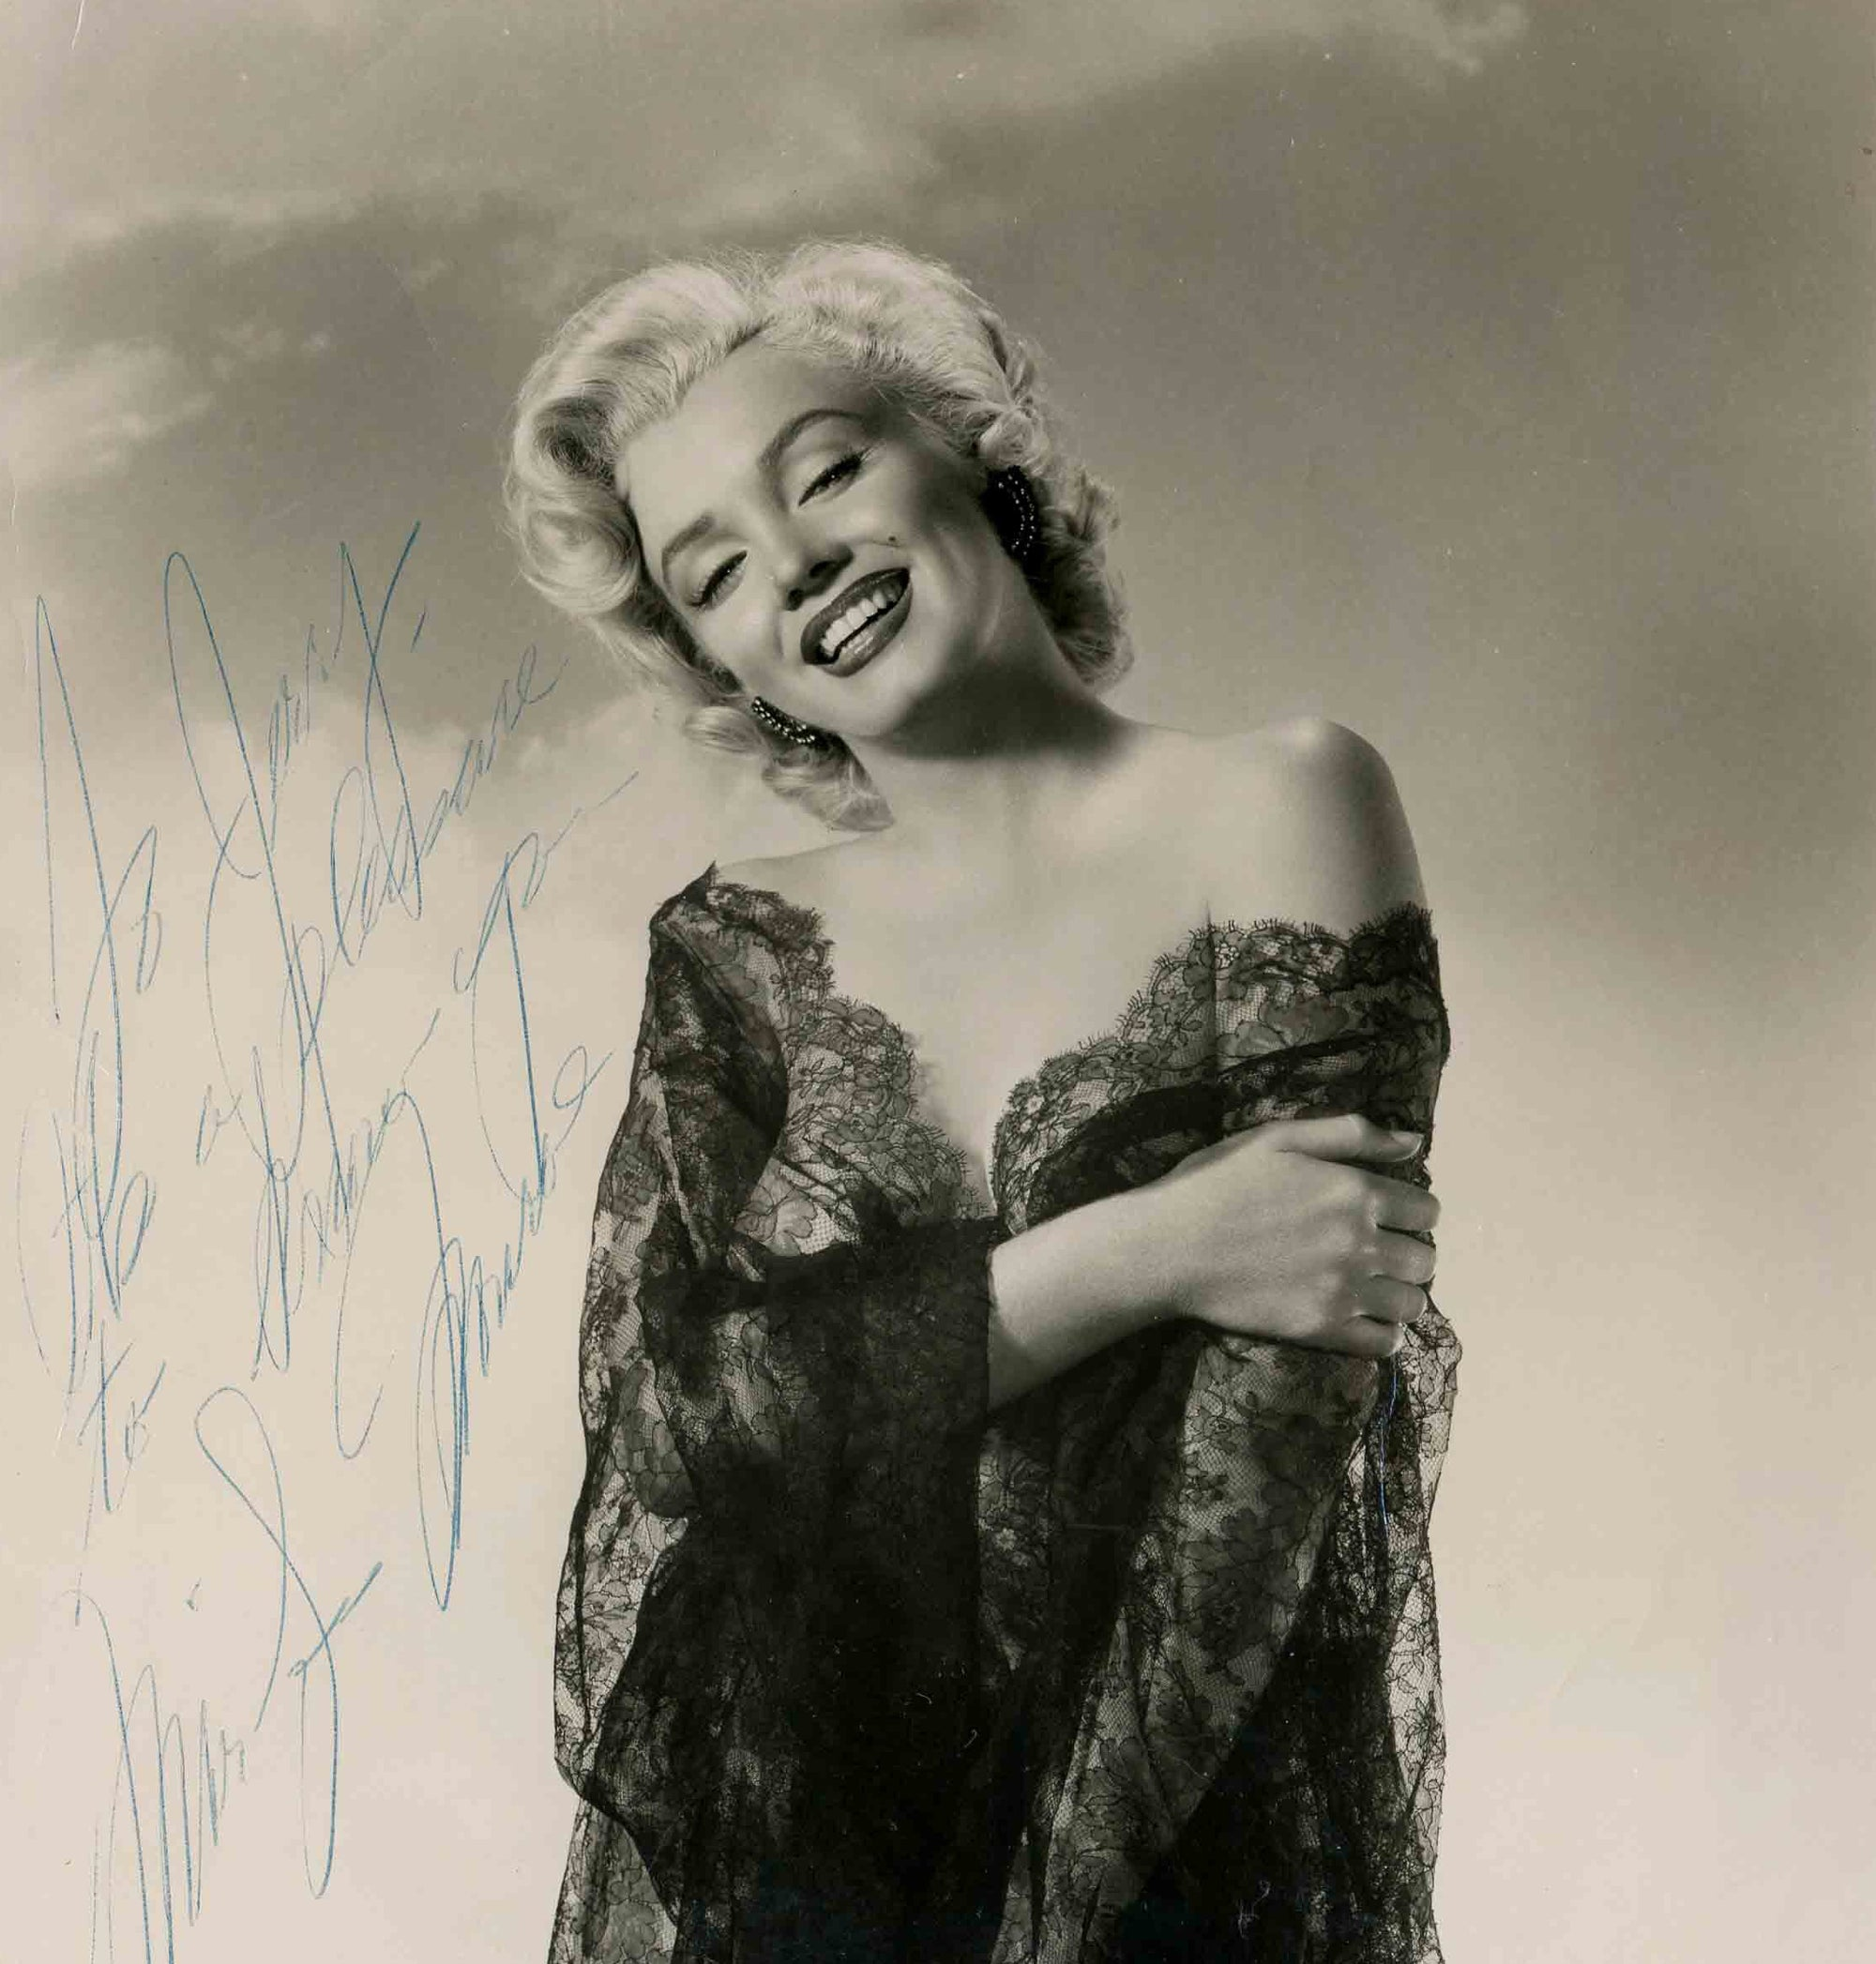 Marilyn Monroe Signed Photograph Expected to Attain $12,000-$14,000